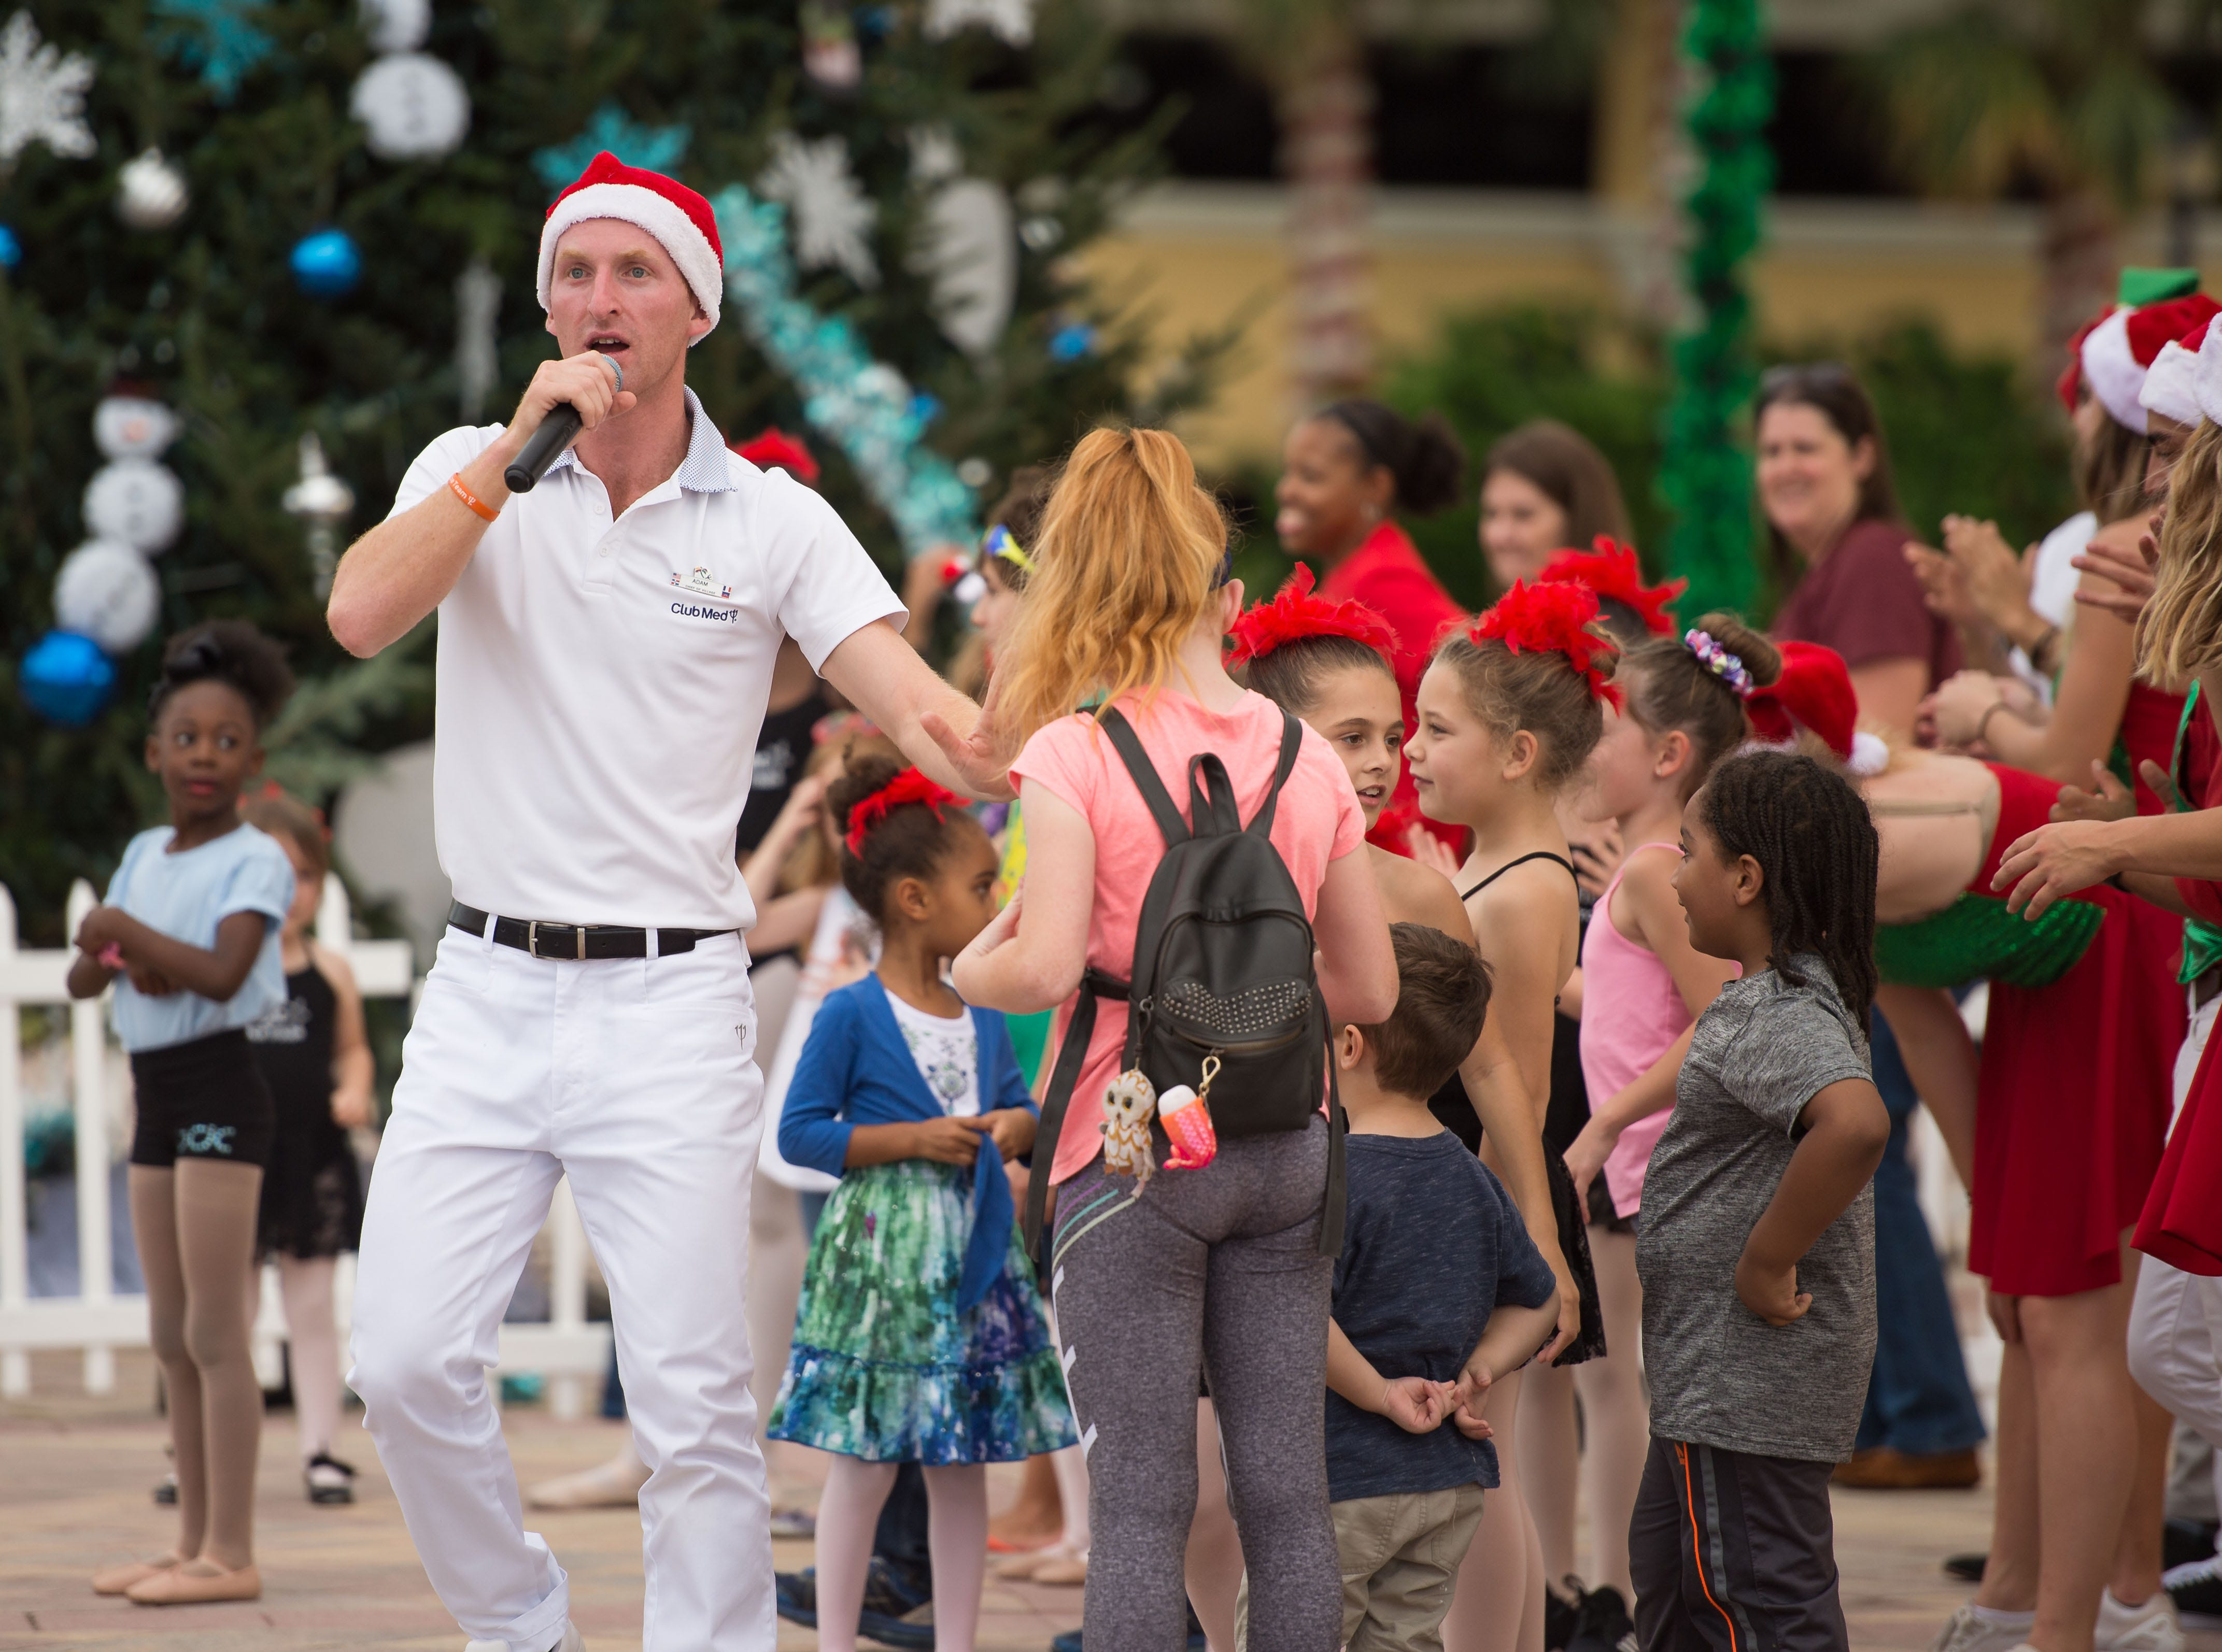 The Port St. Lucie Festival of Lights is held at the Port St. Lucie Civic Center on Saturday, Dec. 1, 2018, in Port St. Lucie. In addition to food, holiday shopping and live music, the event featured the Snowflakes & Snowmen parade and tree lighting.